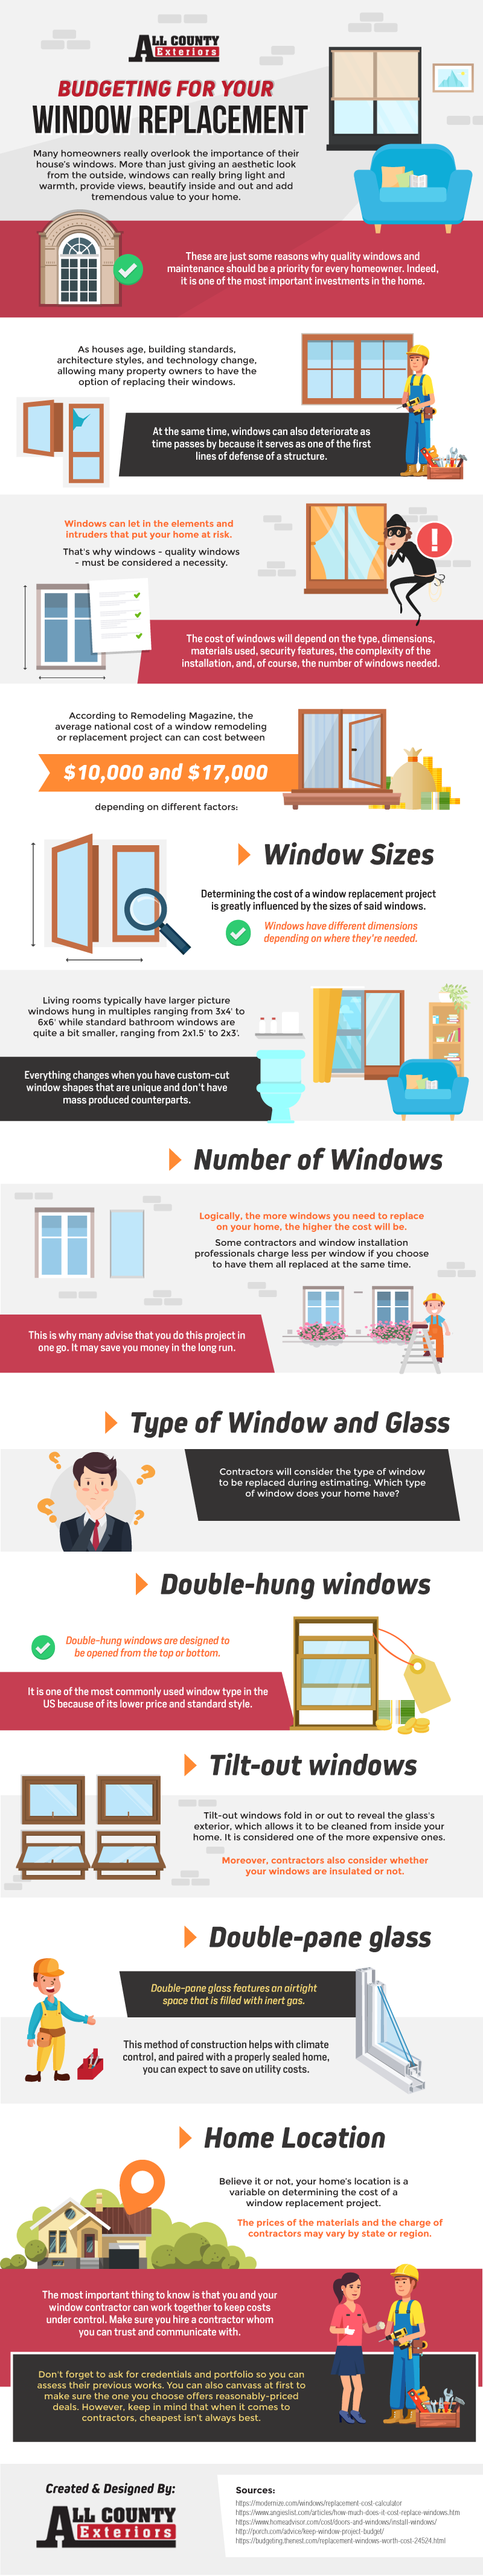 """<img class=""""aligncenter wp-image-1612 size-full"""" src=""""https://allcountyexteriors.com/wp-content/uploads/2018/01/Budgeting-for-your-Window-Replacement-01.png"""" alt="""""""" width=""""800"""" height=""""4270"""" />"""